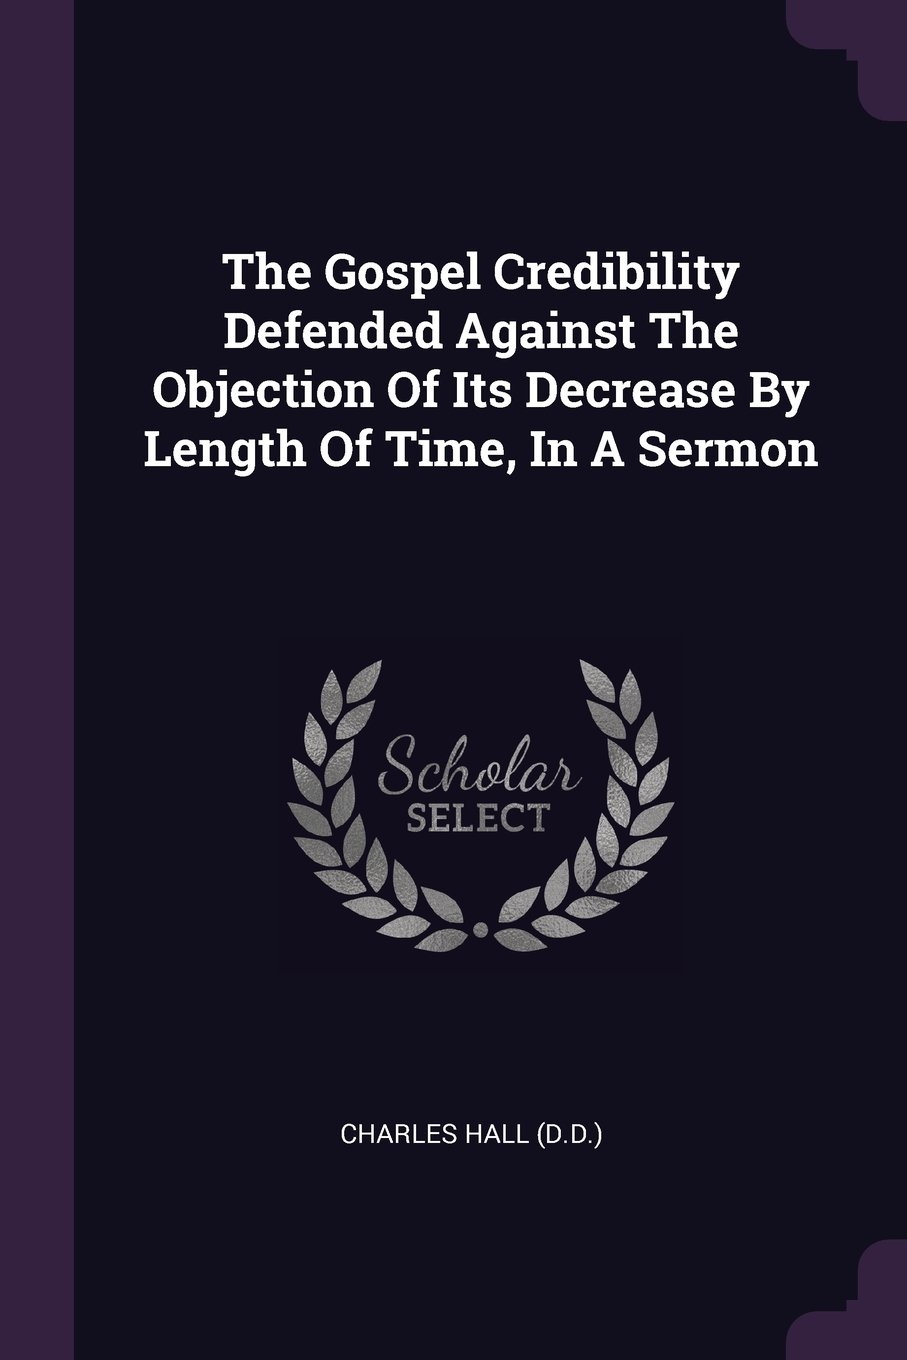 The Gospel Credibility Defended Against the Objection of Its